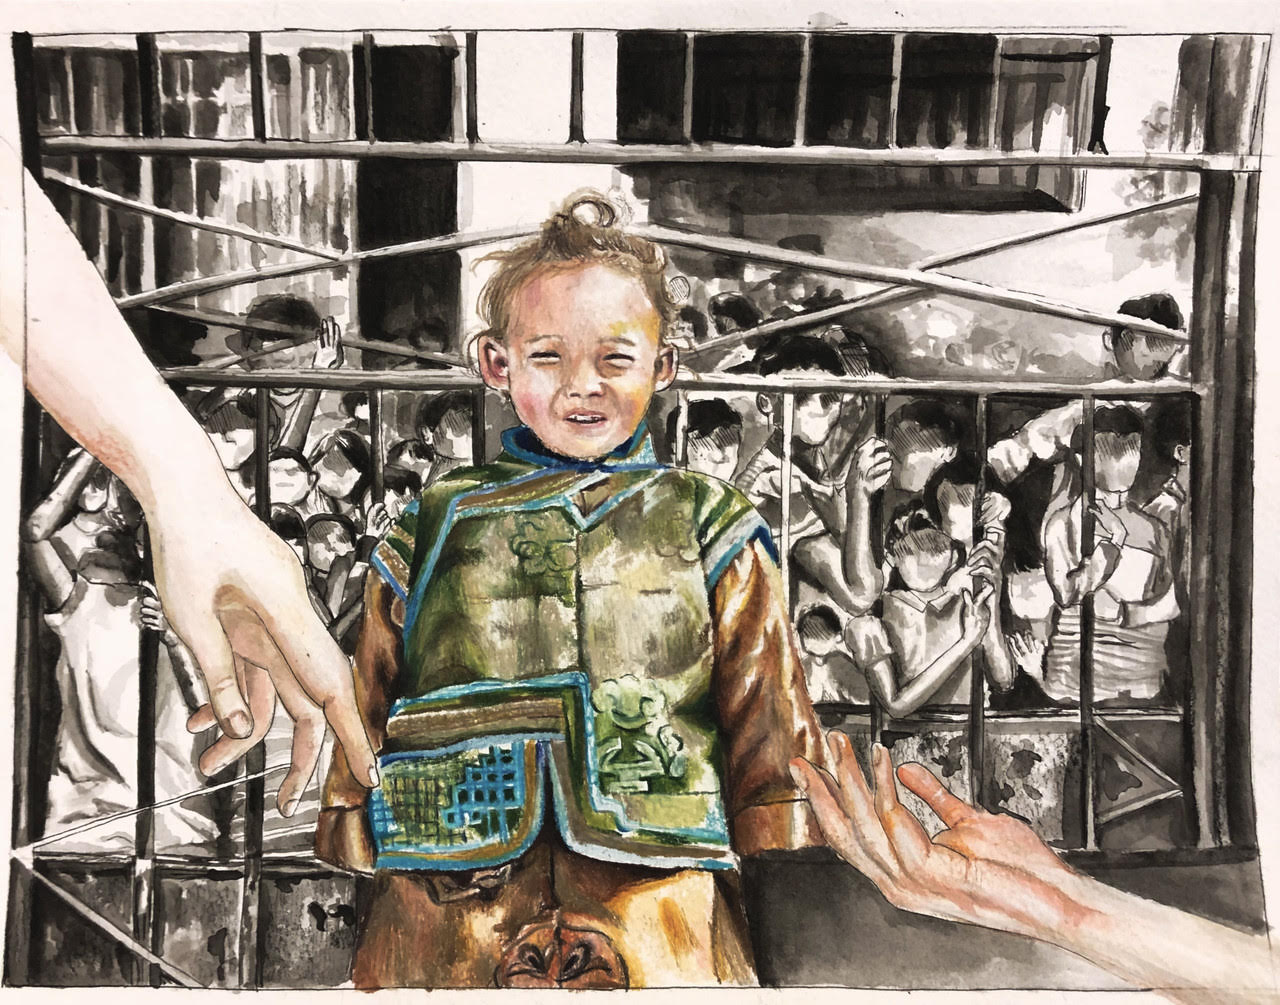 A child in traditional Mongolian dress stands in front of a crowd of faceless figures behind bars. In the foreground, two adult hands reach out to the child.